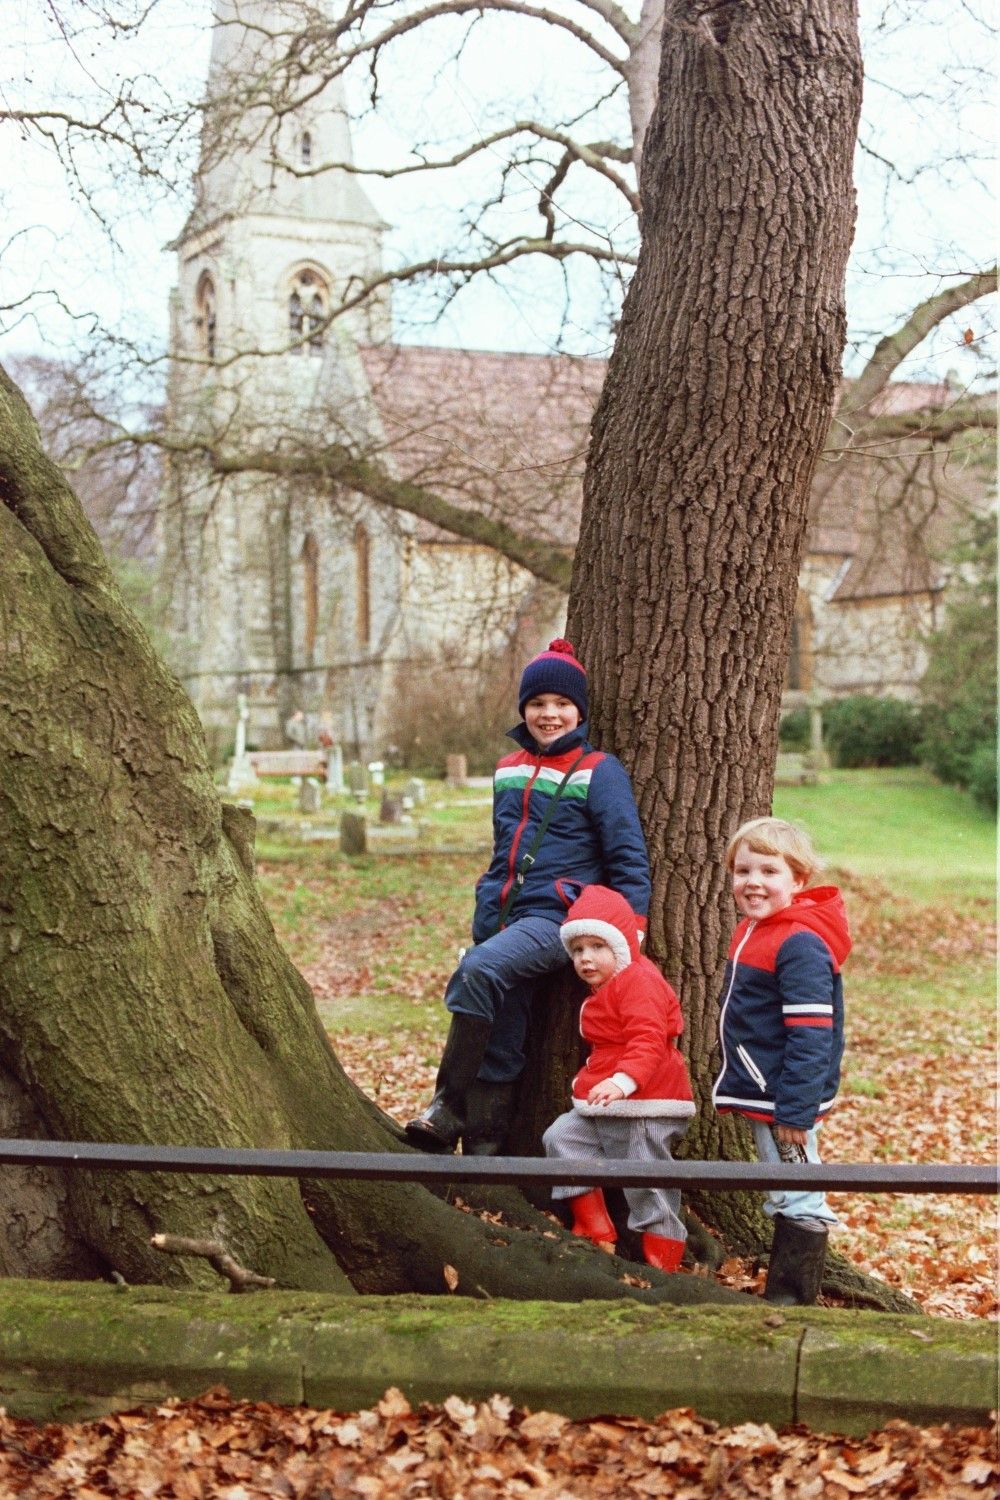 Russel Shearer, Amy Shearer and Matt Shearer, in front of High Beech Church, Essex, UK